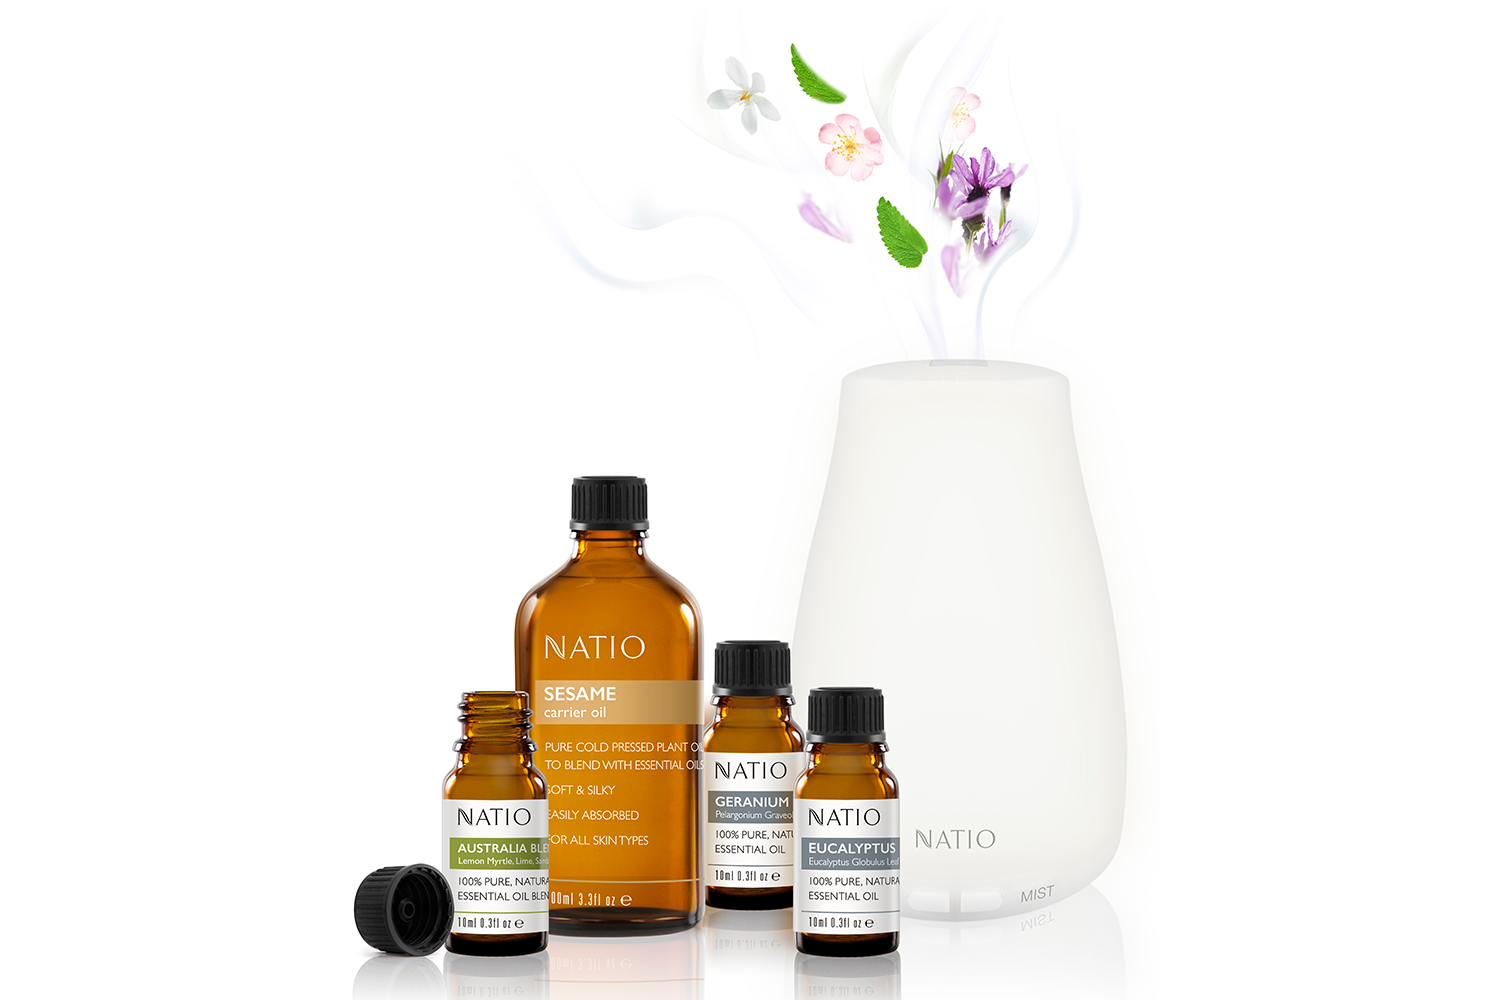 Natio's home happiness - 100% Pure, Natural Essential Oils